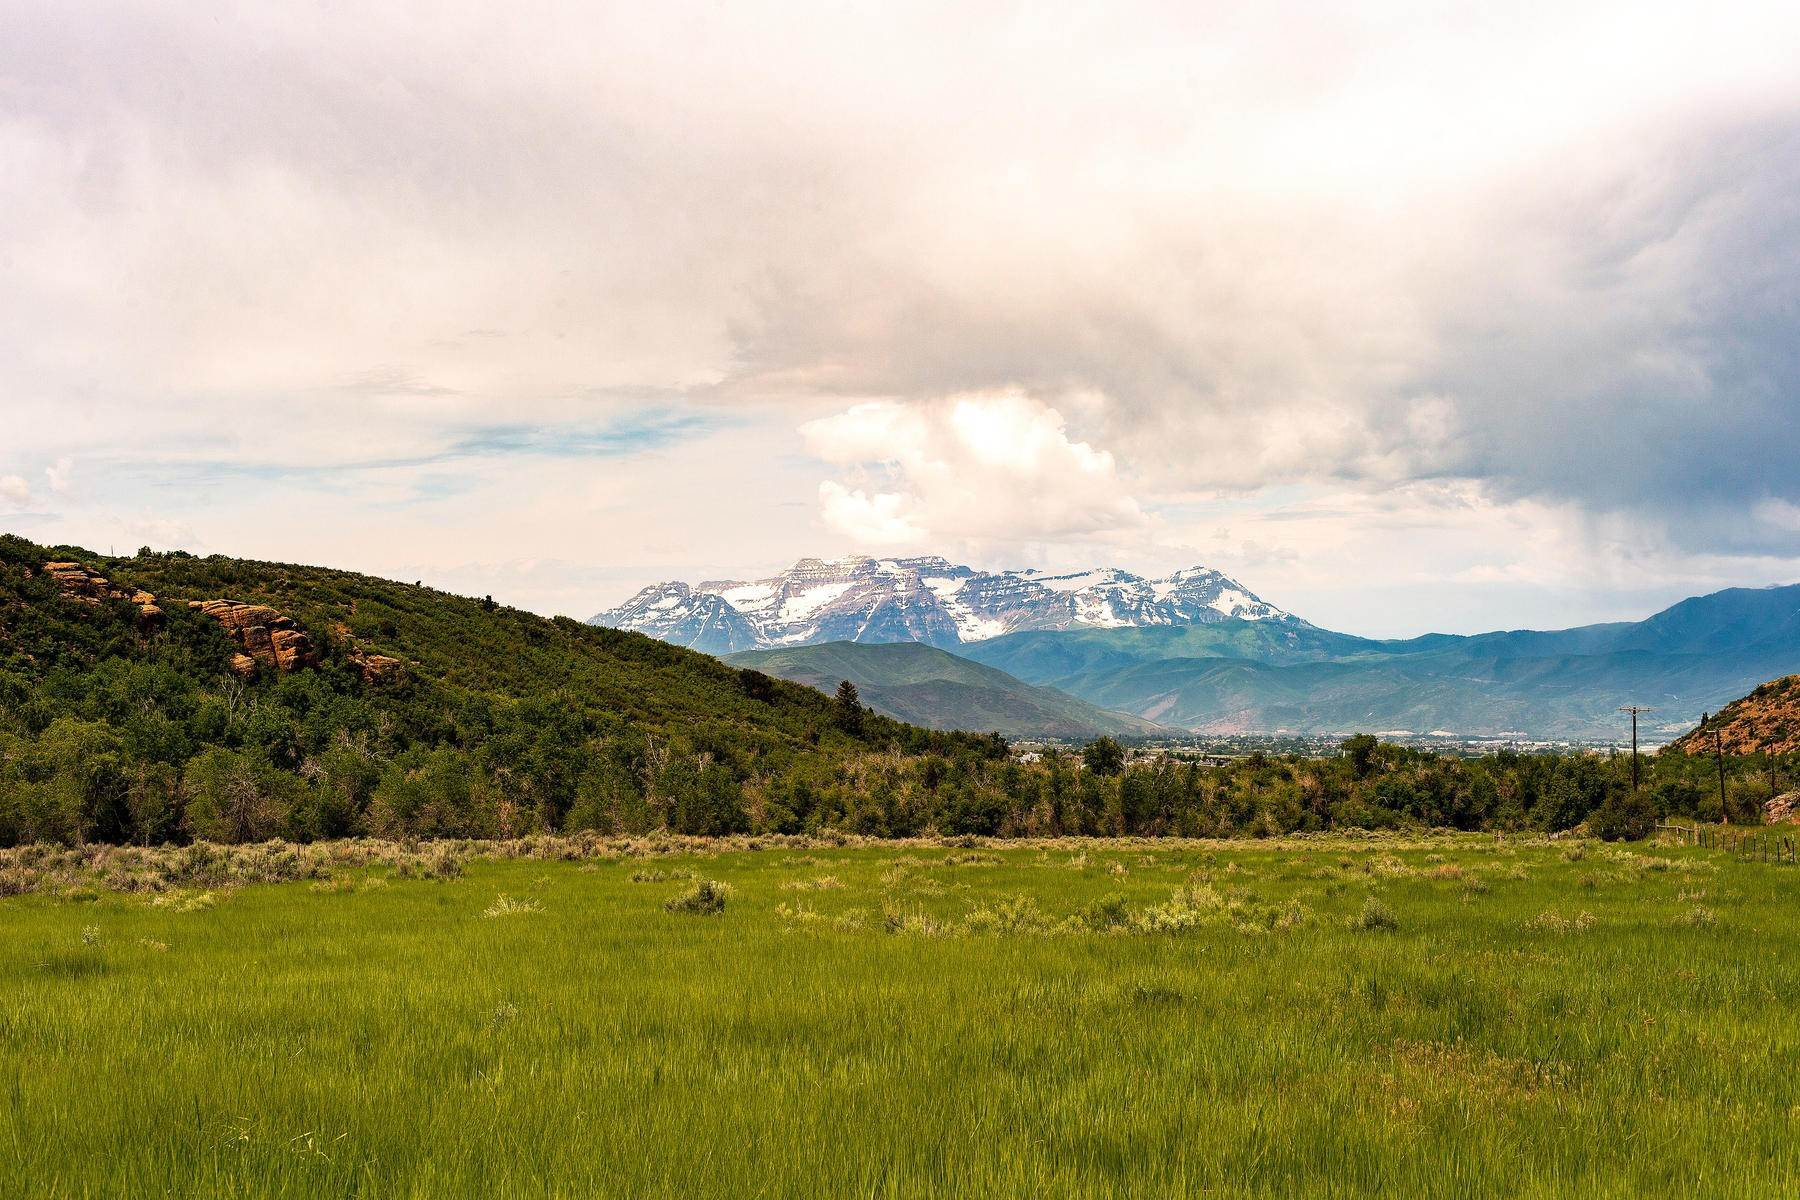 Land for Sale at Stunning Views of Mount Timpanogos from Over 406 Acres in Heber Valley Lake Creek Road Heber, Utah 84032 United States